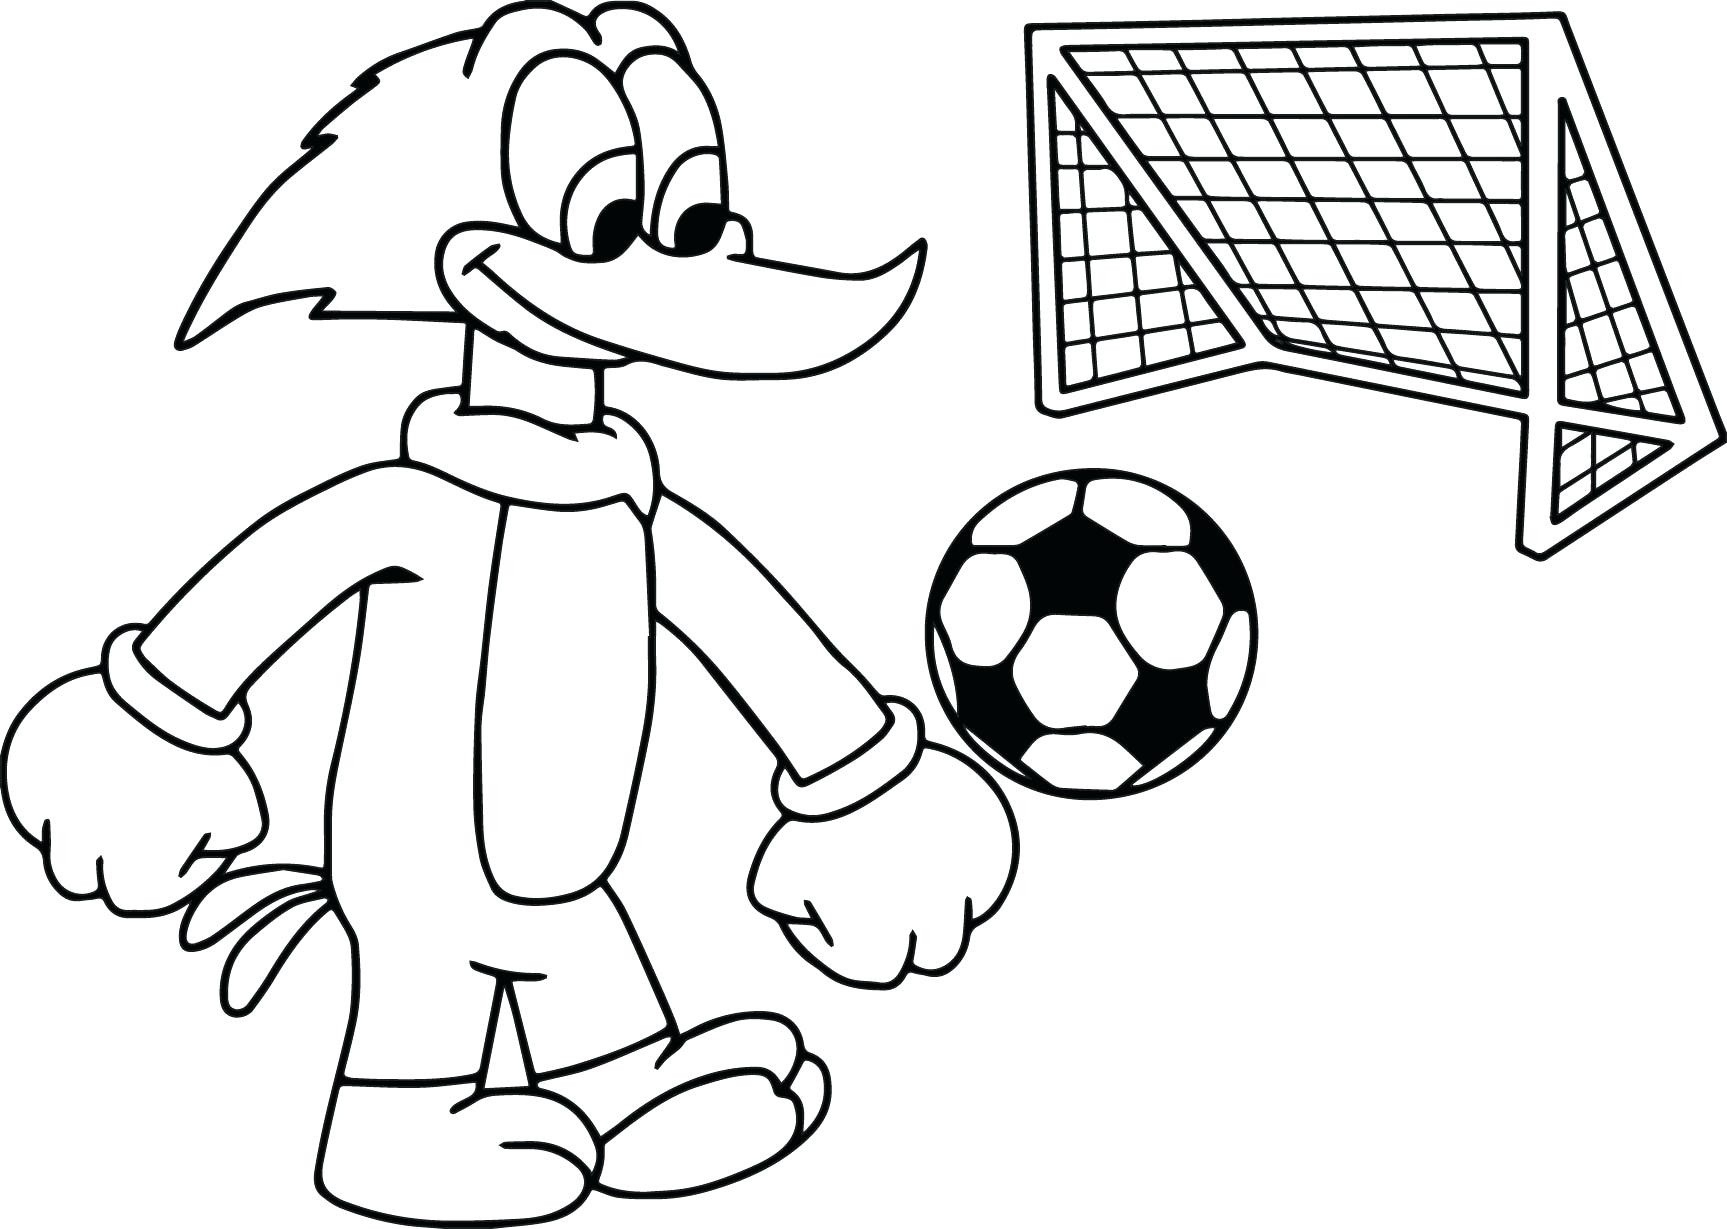 1727x1229 Beautiful Free Printable Soccer Ball Coloring Pages Soccer Wallpaper